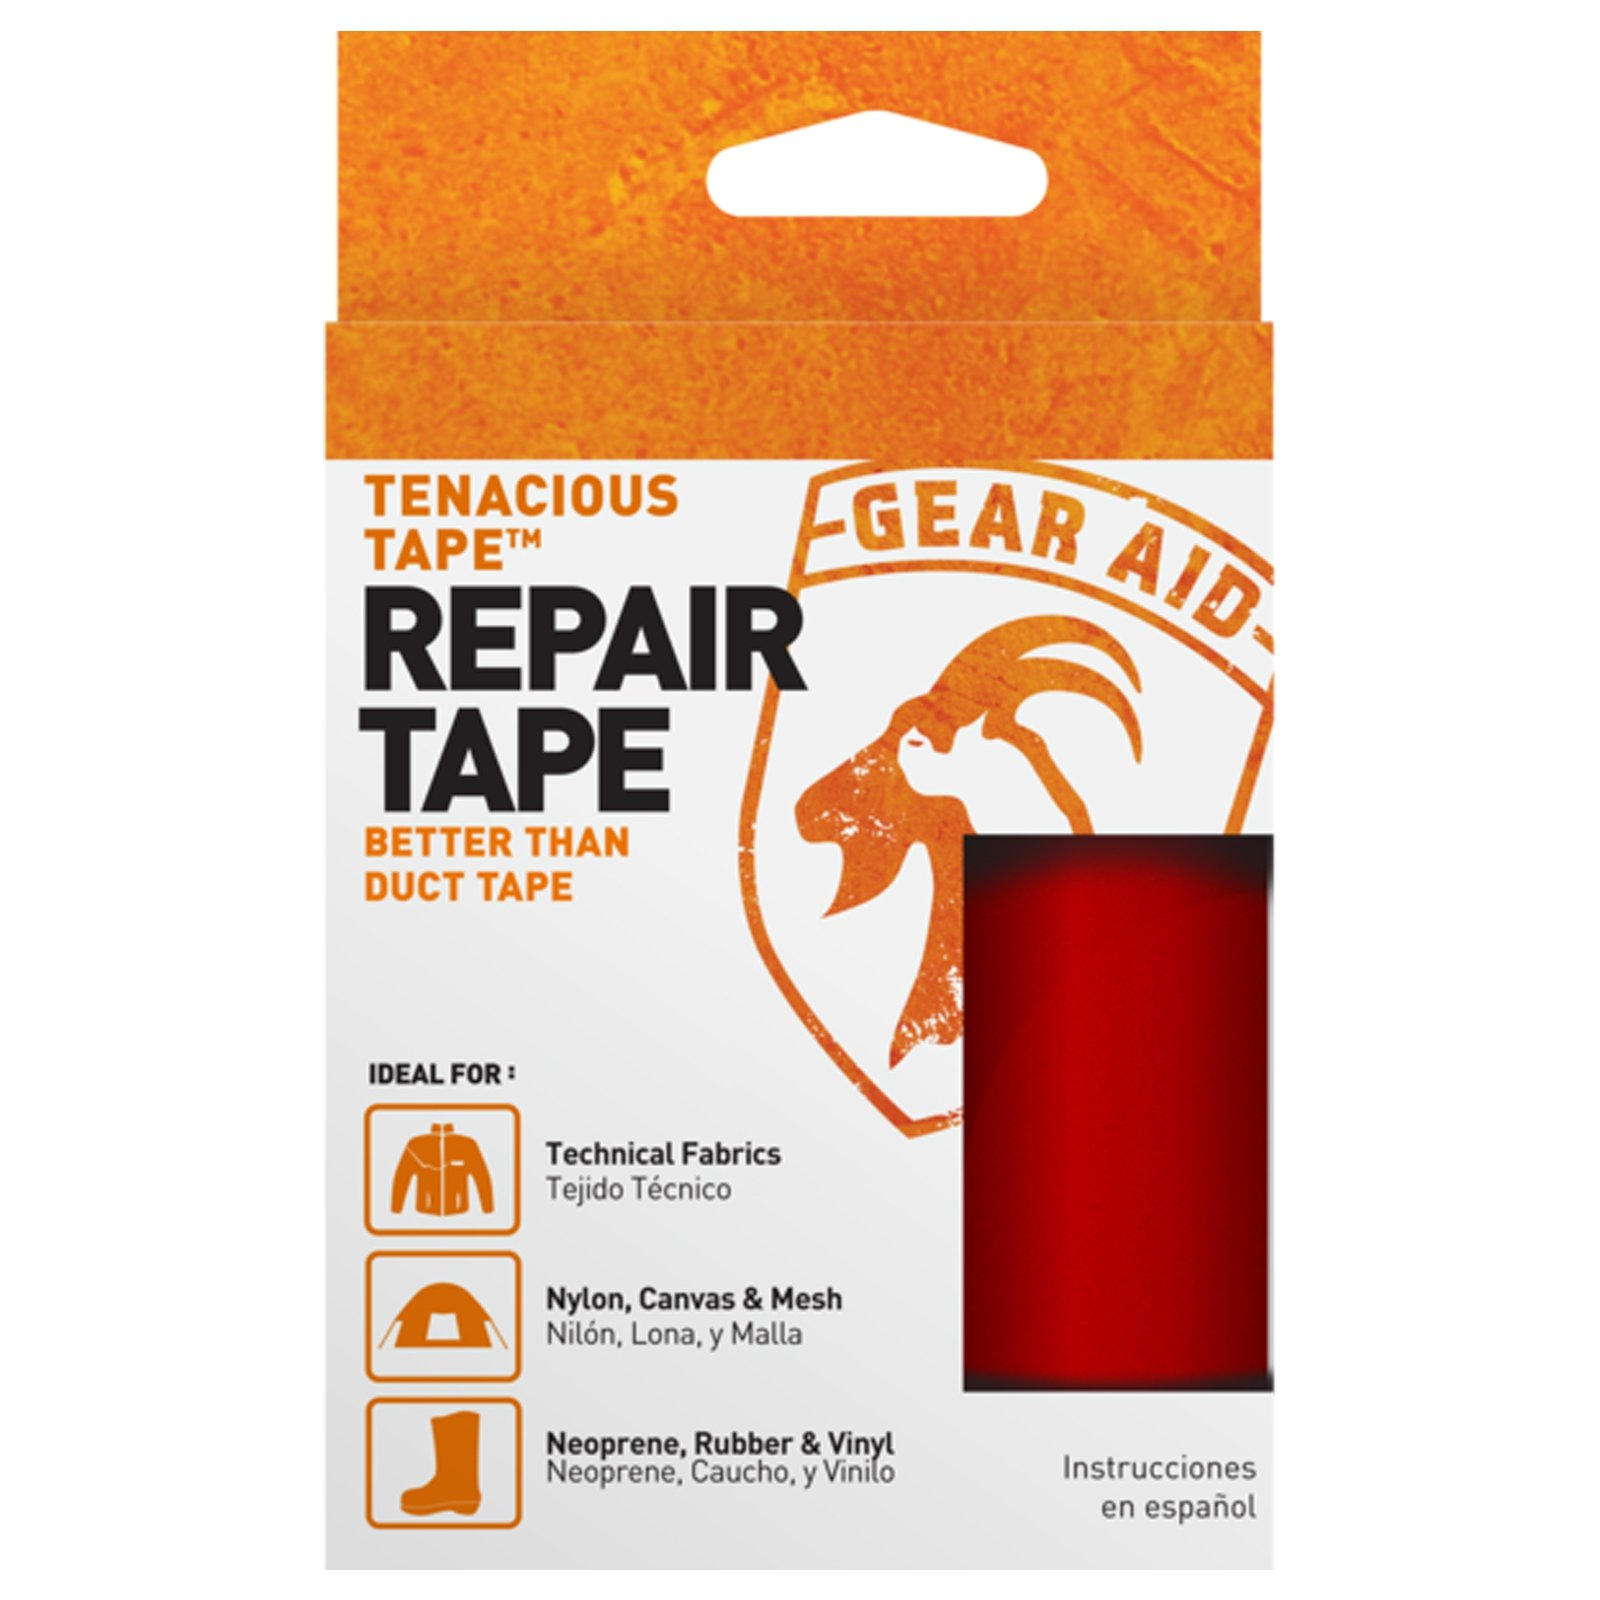 "McNett Tenacious Repair Tape Gear Aid Clean Adhesive All Purpose Outdoor Gear in Red for No Sticky Messes and 3"" x 20"""